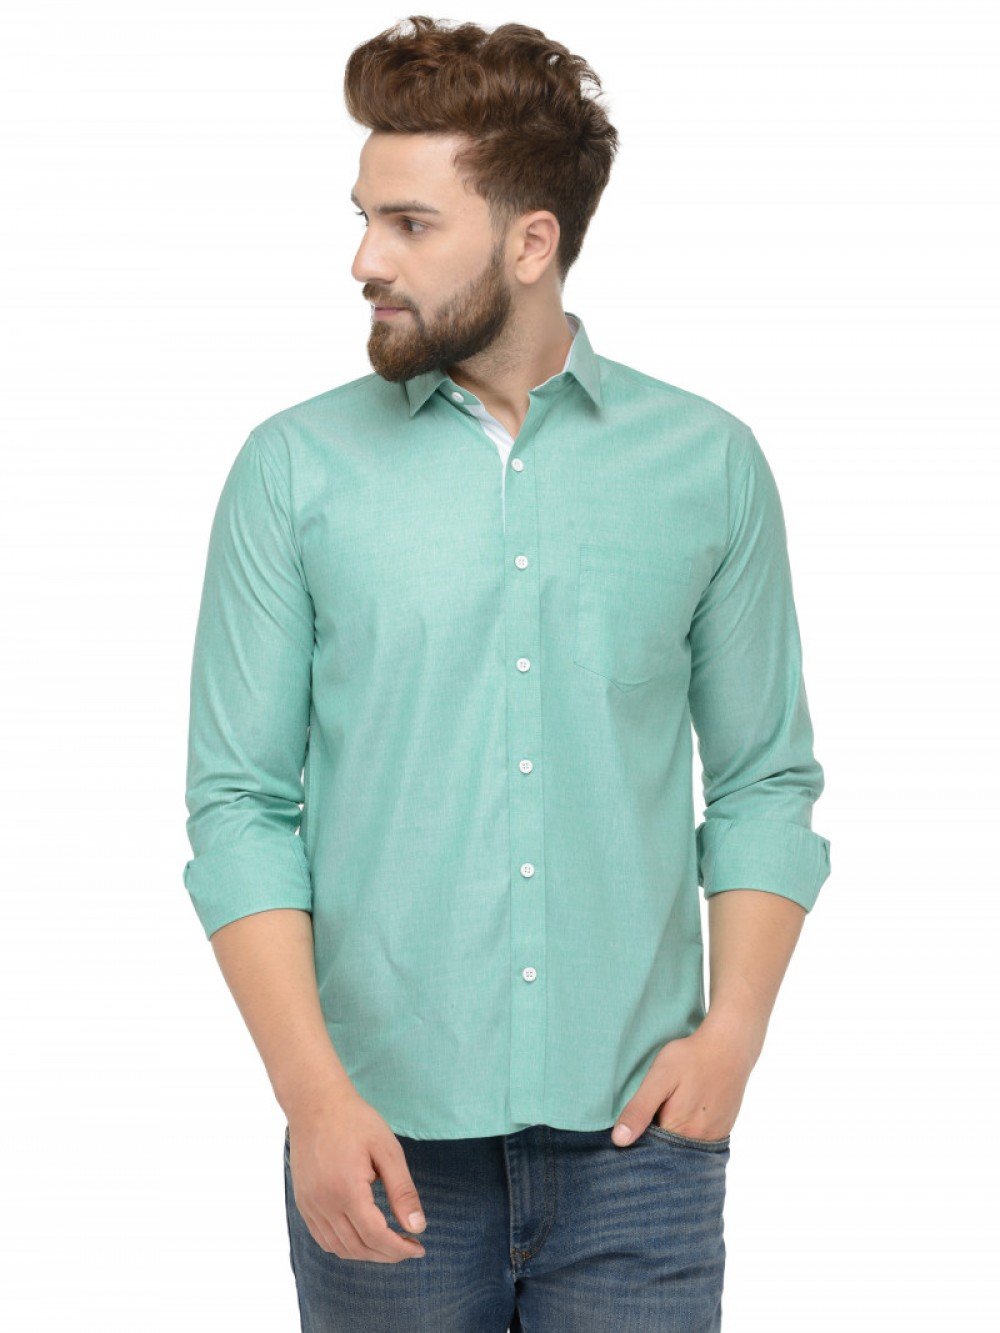 Green Color Attractive Wear Shirt